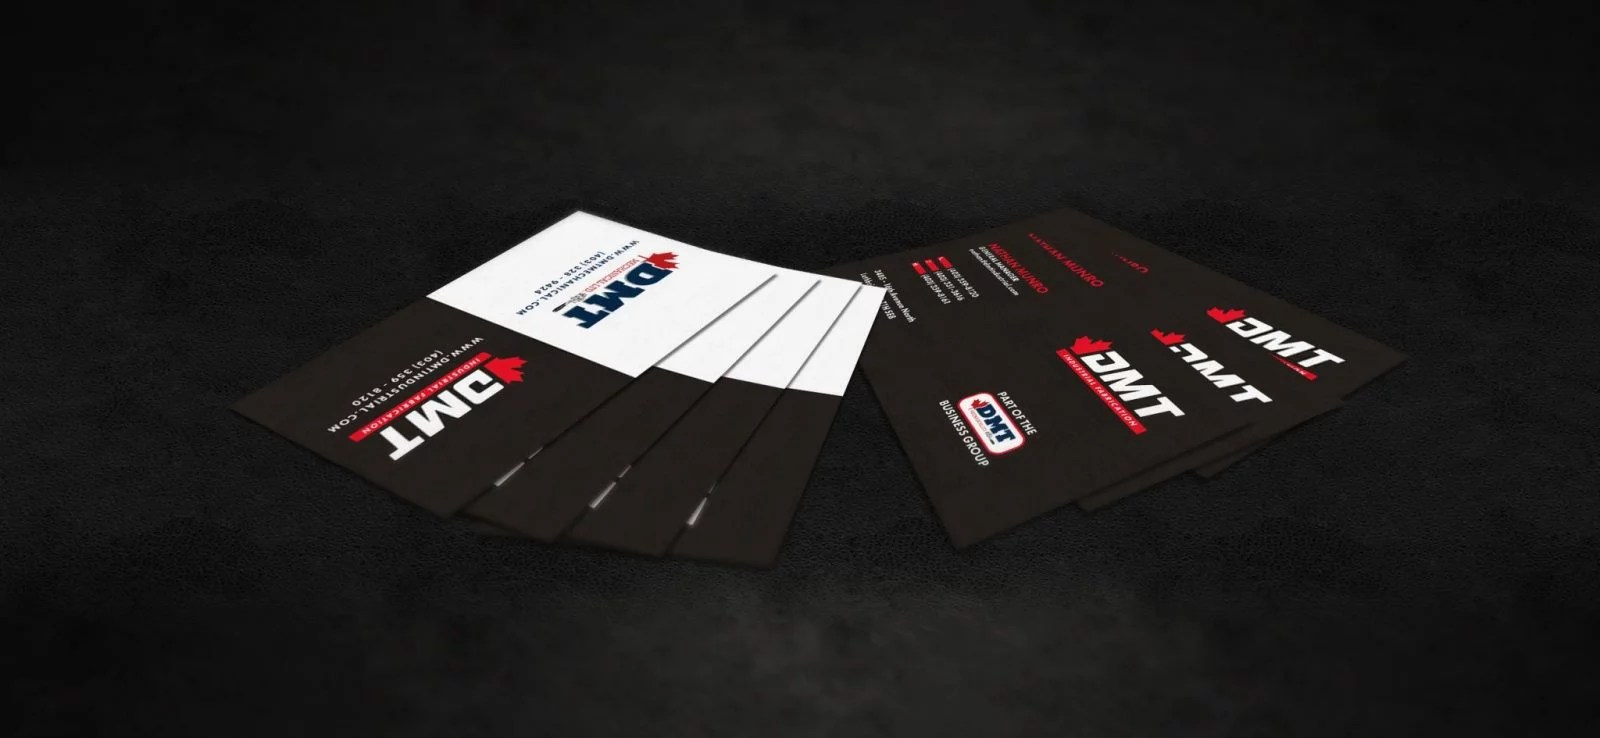 DMT Business Group - Business Card Design - Lethbridge Alberta